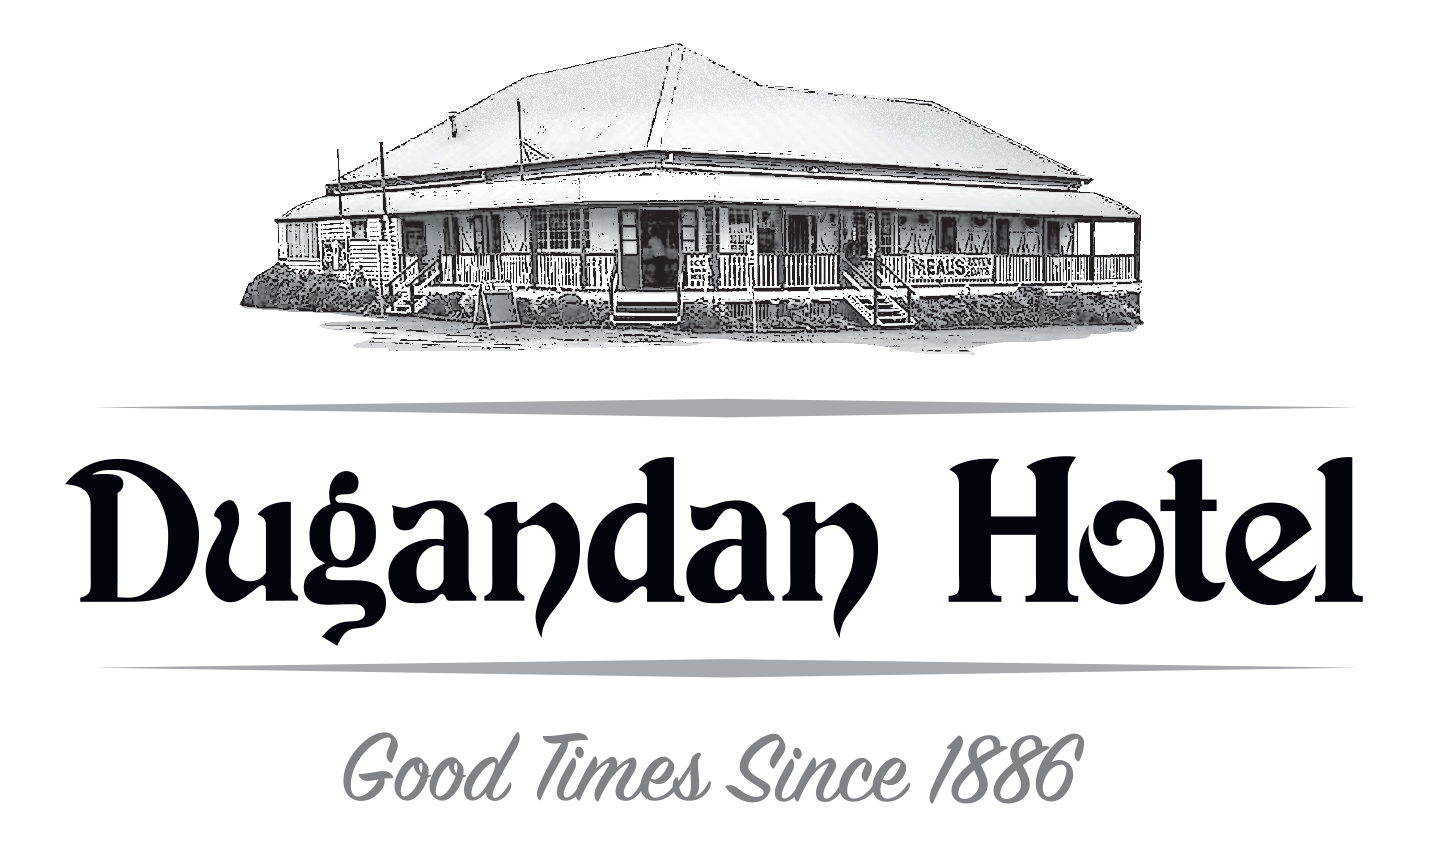 Dugandan Hotel - Byron Bay Accommodations